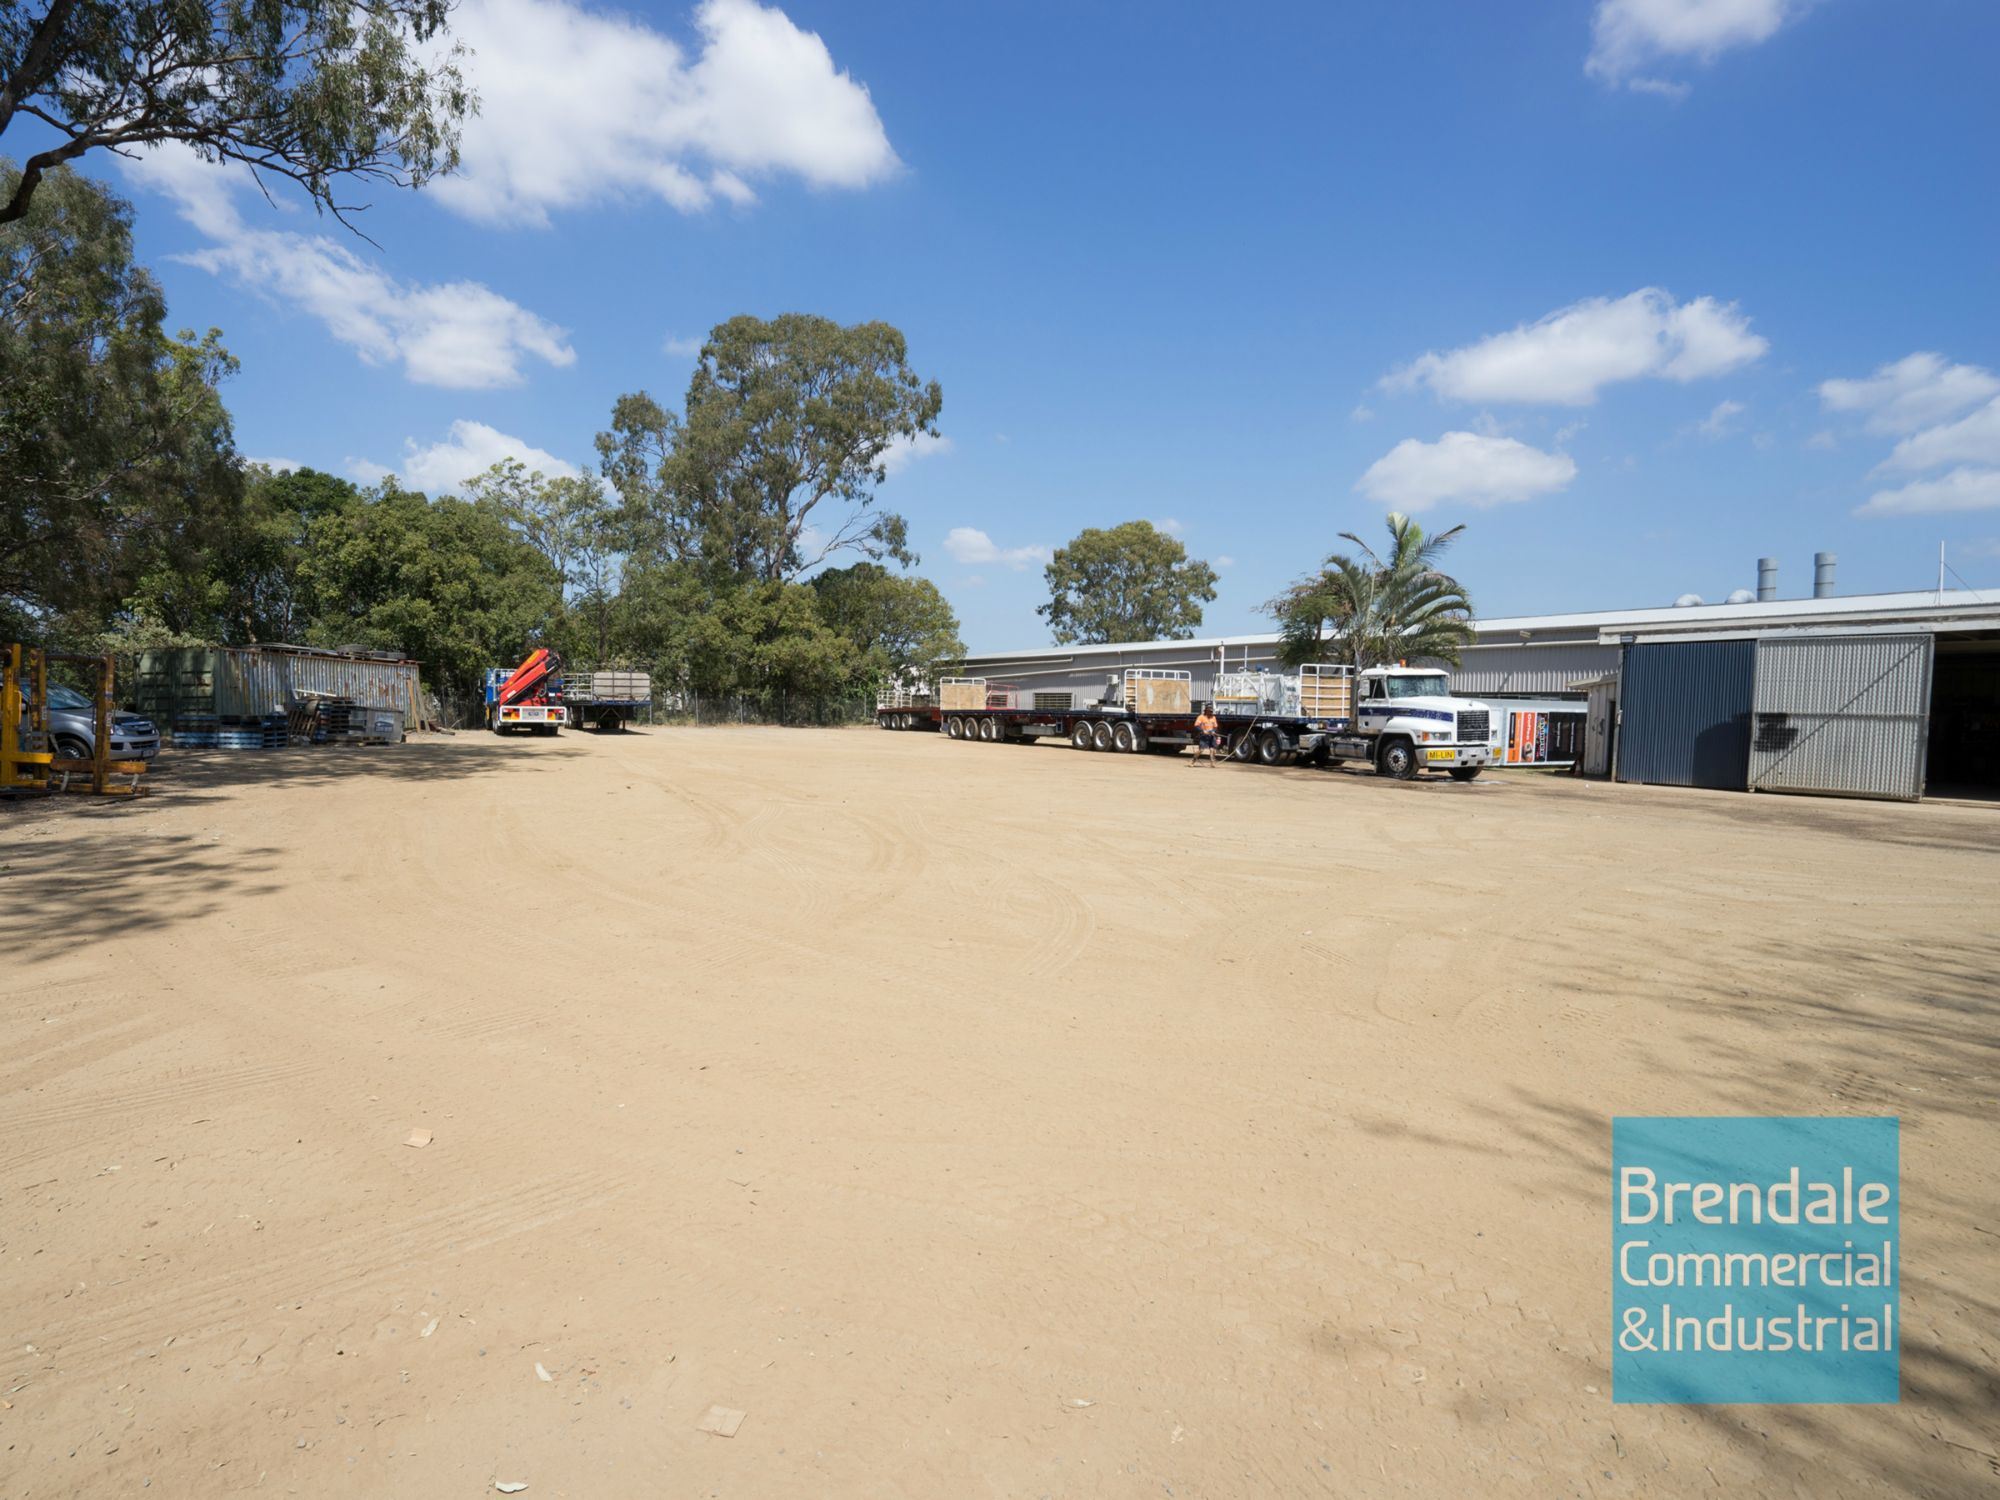 Brendale Commercial Amp Industrial 3 500m2 Site 150m2